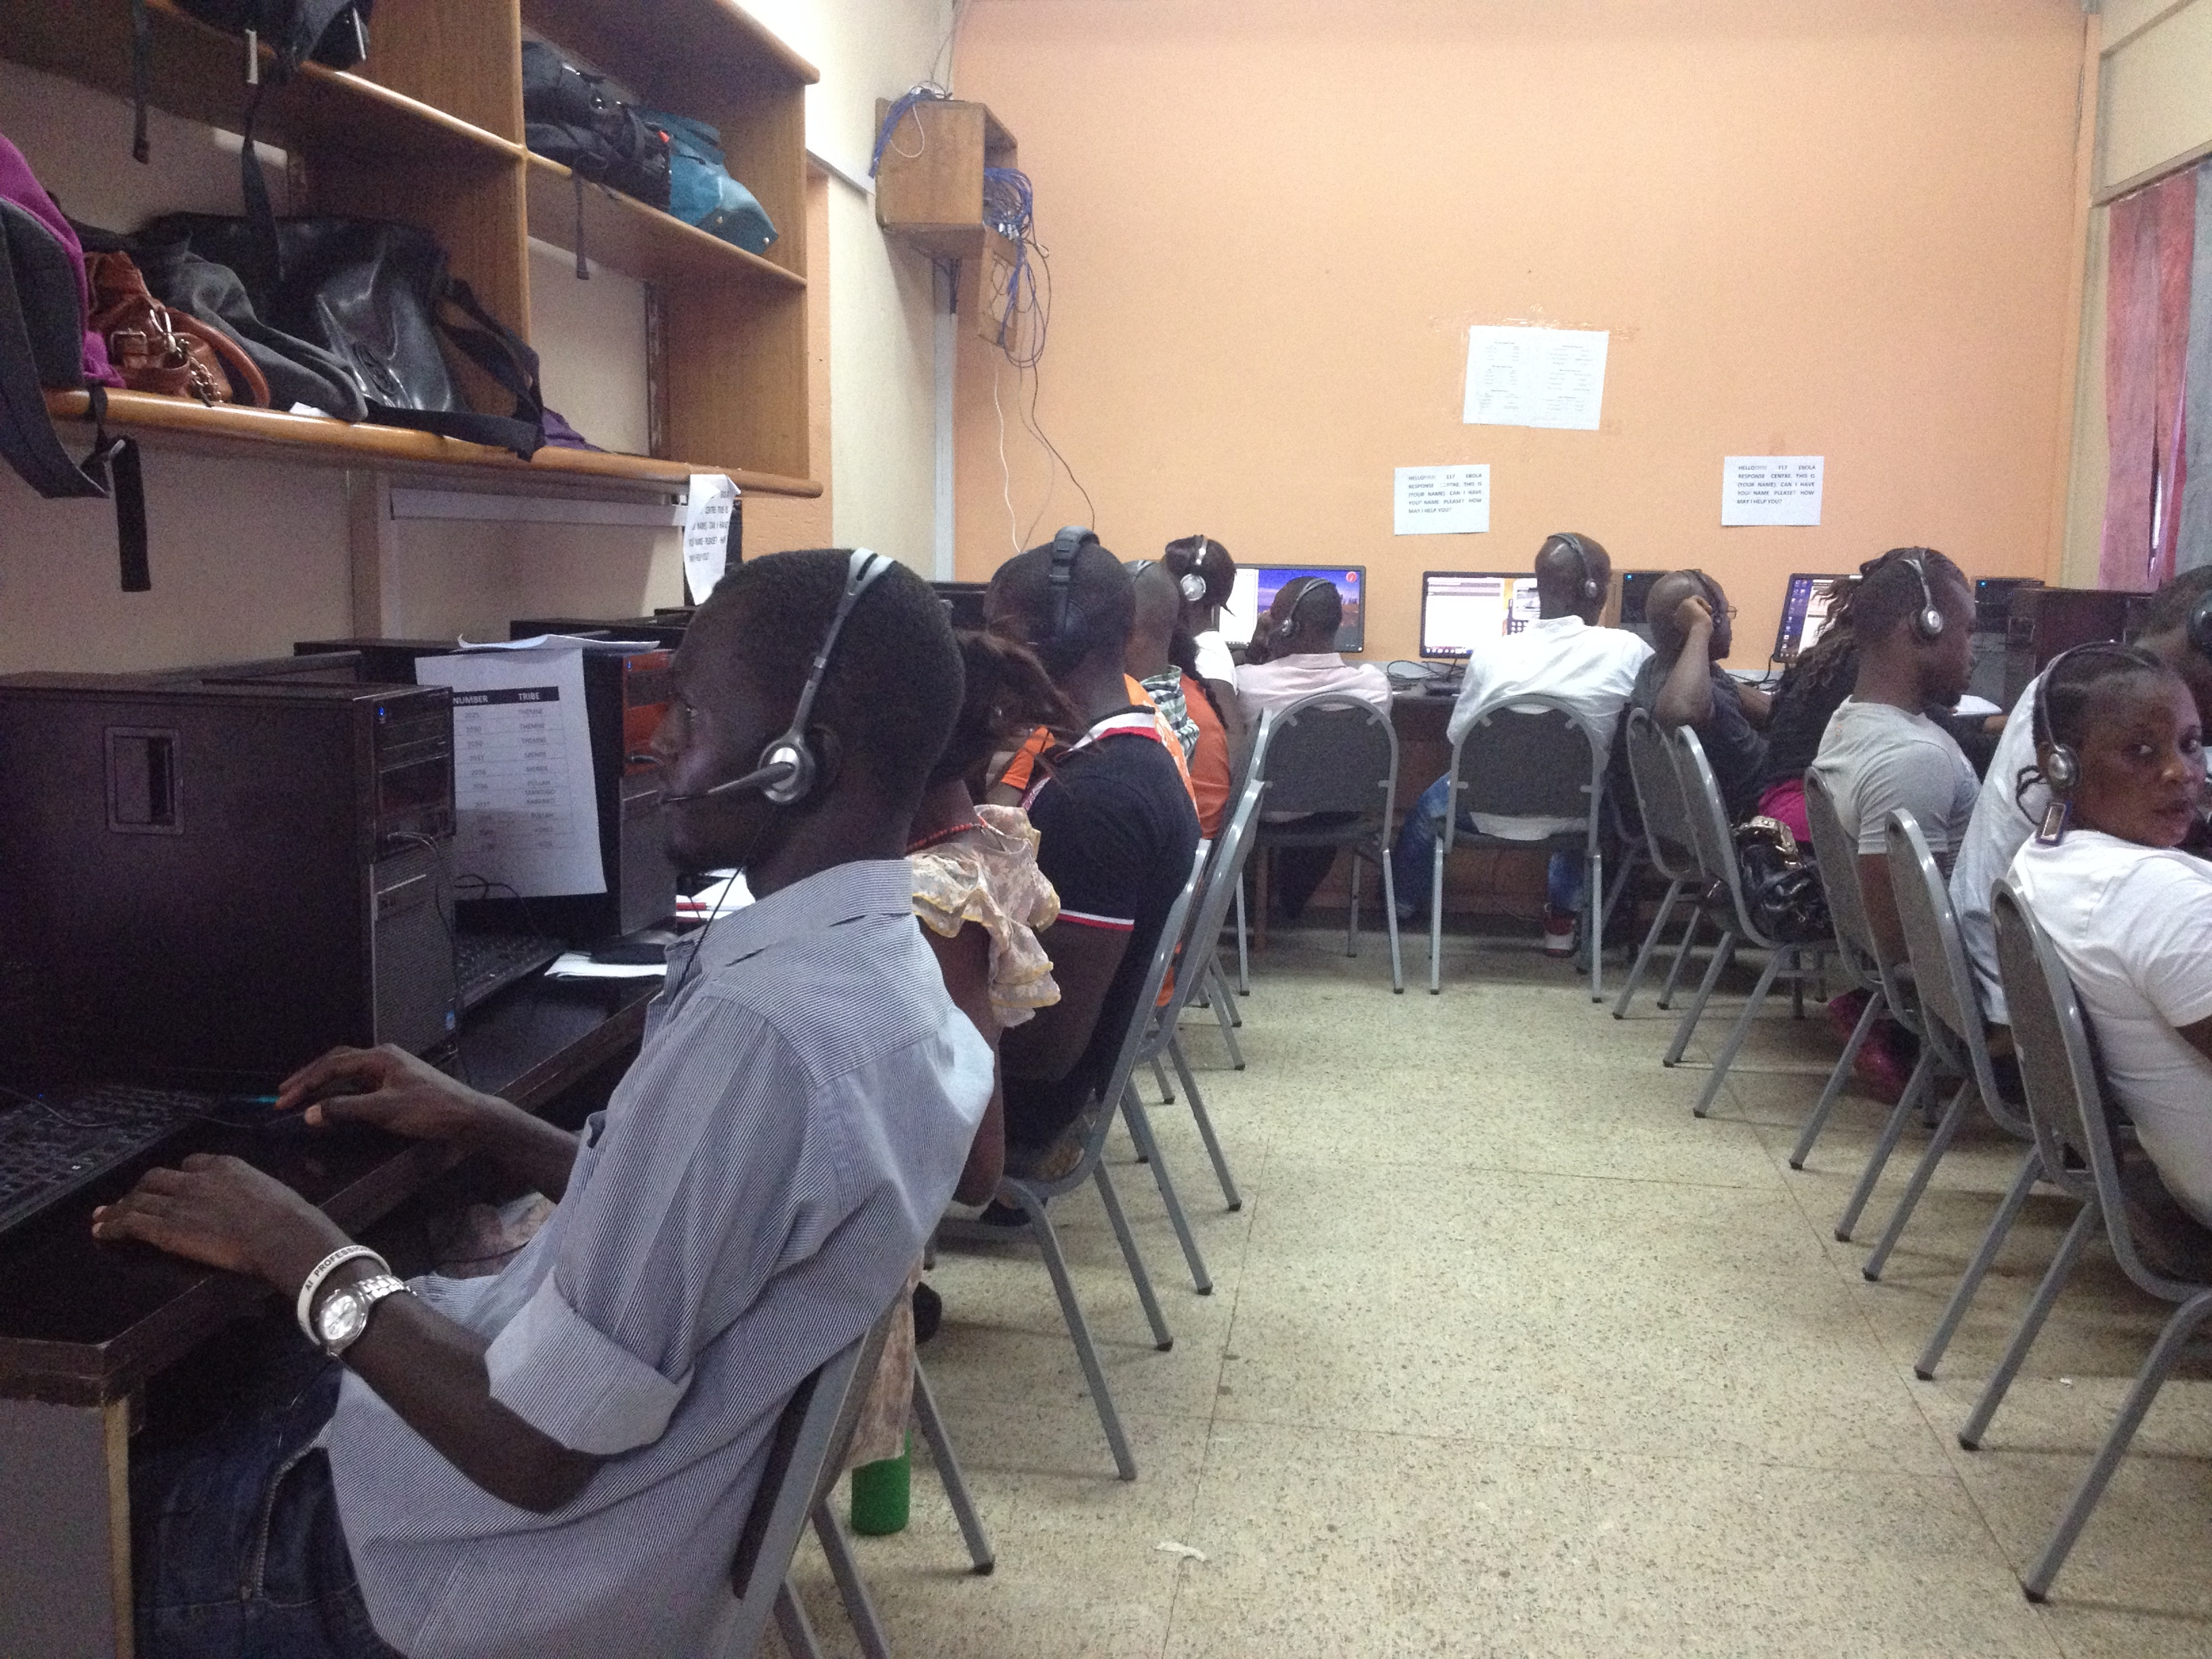 The 117 call center staffs about 52 employes per shift, Freetown, Sierra Leone, Oct, 30, 2014. (Nina deVries / VOA)